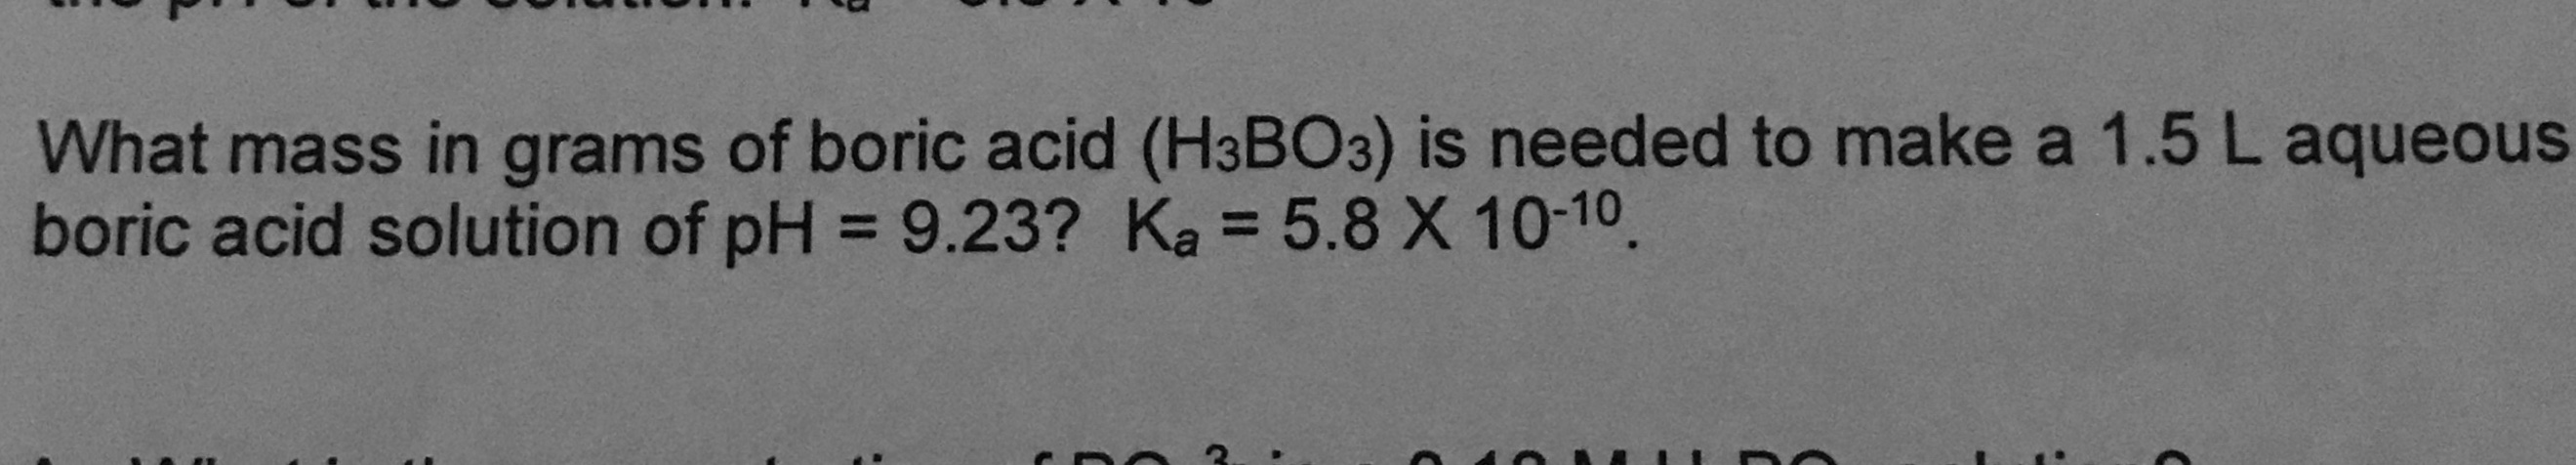 What mass in grams of boric acid (H3BO3) is needed to make a 1.5 L aqueous boric acid solution of pH = 9.23? Ka = 5.8X 10-10.